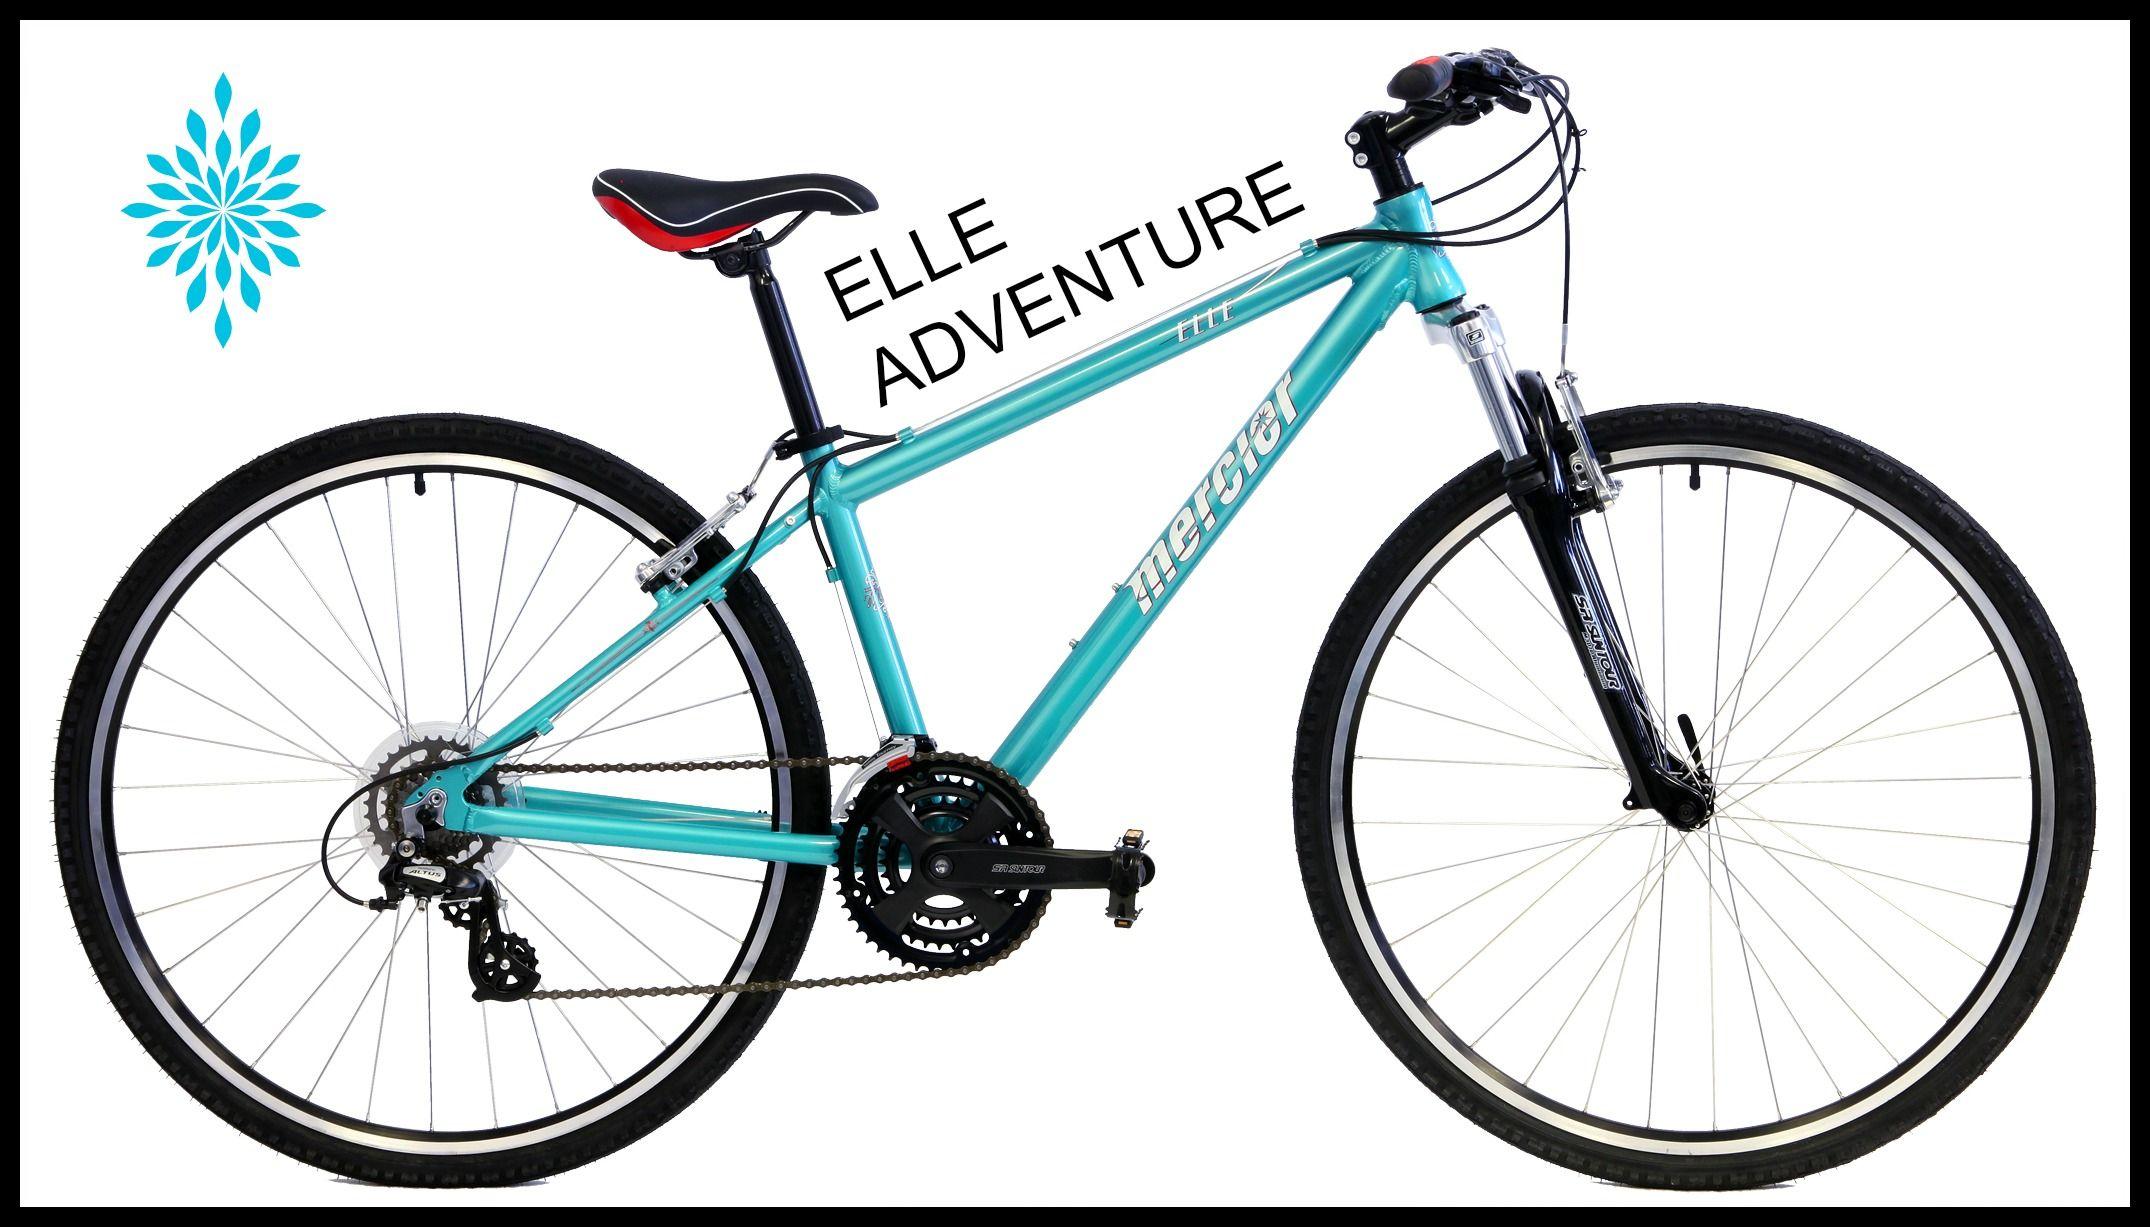 2013 Mercier Elle Adventure Front Suspension Women S Adventure